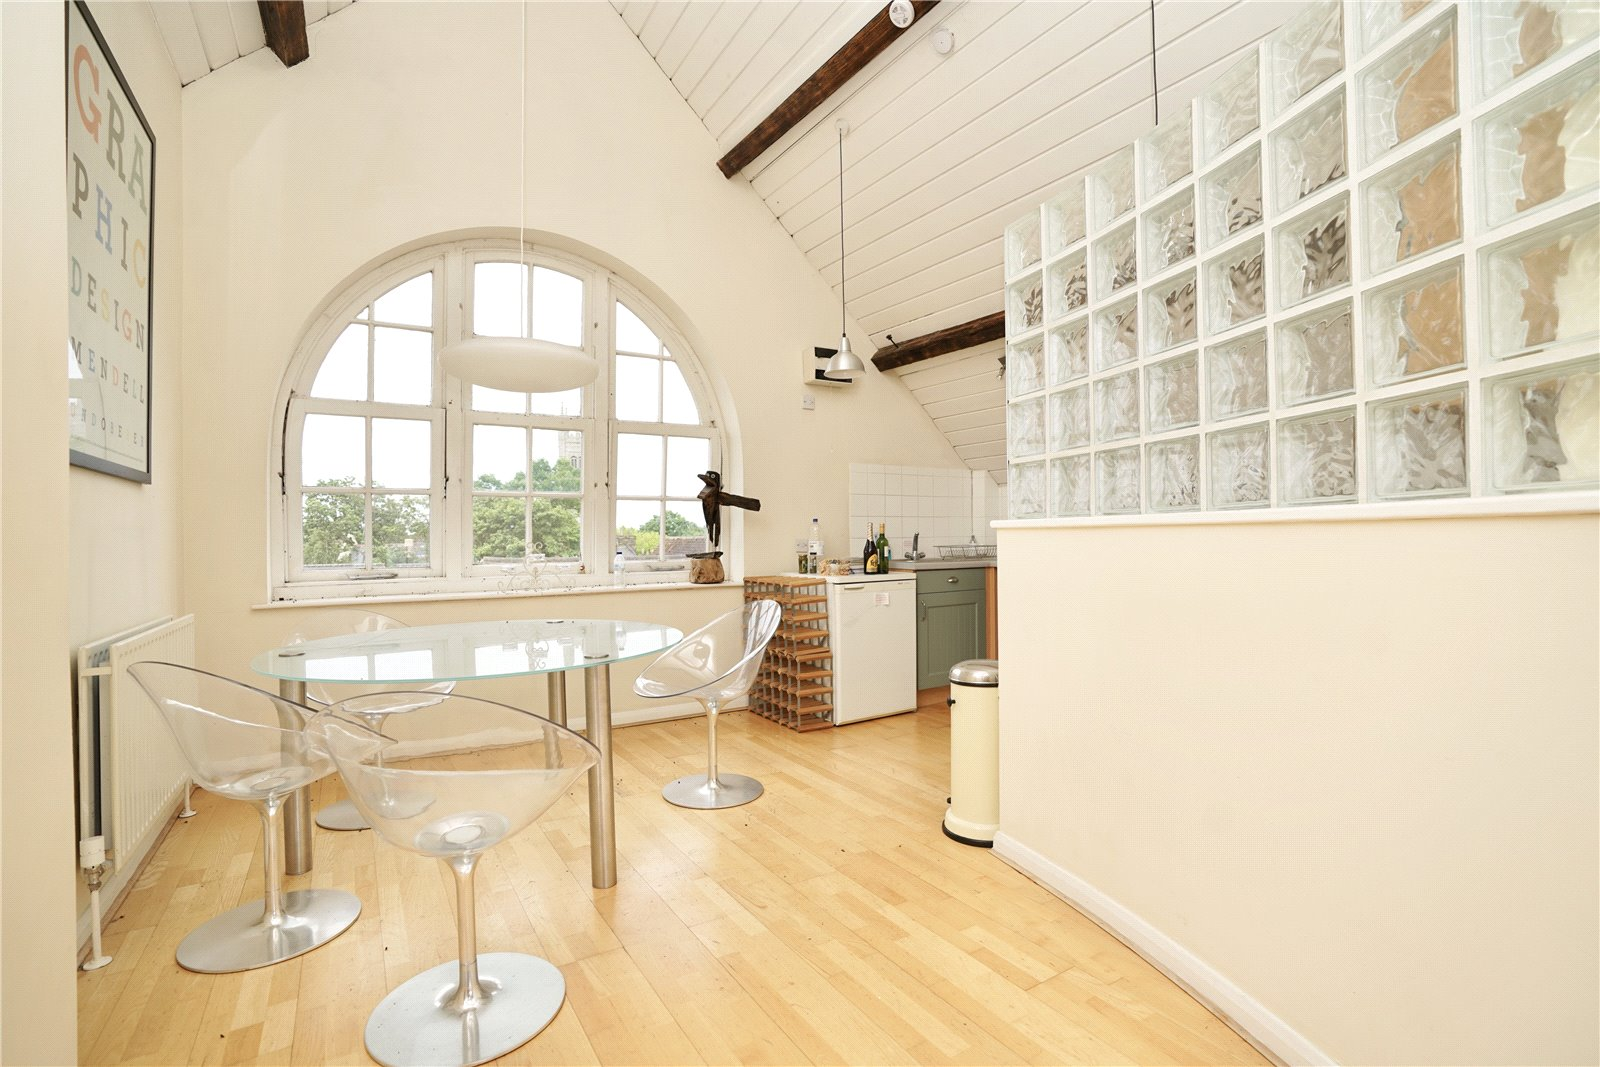 3 bed apartment for sale in Chandlers Wharf, St. Neots 3